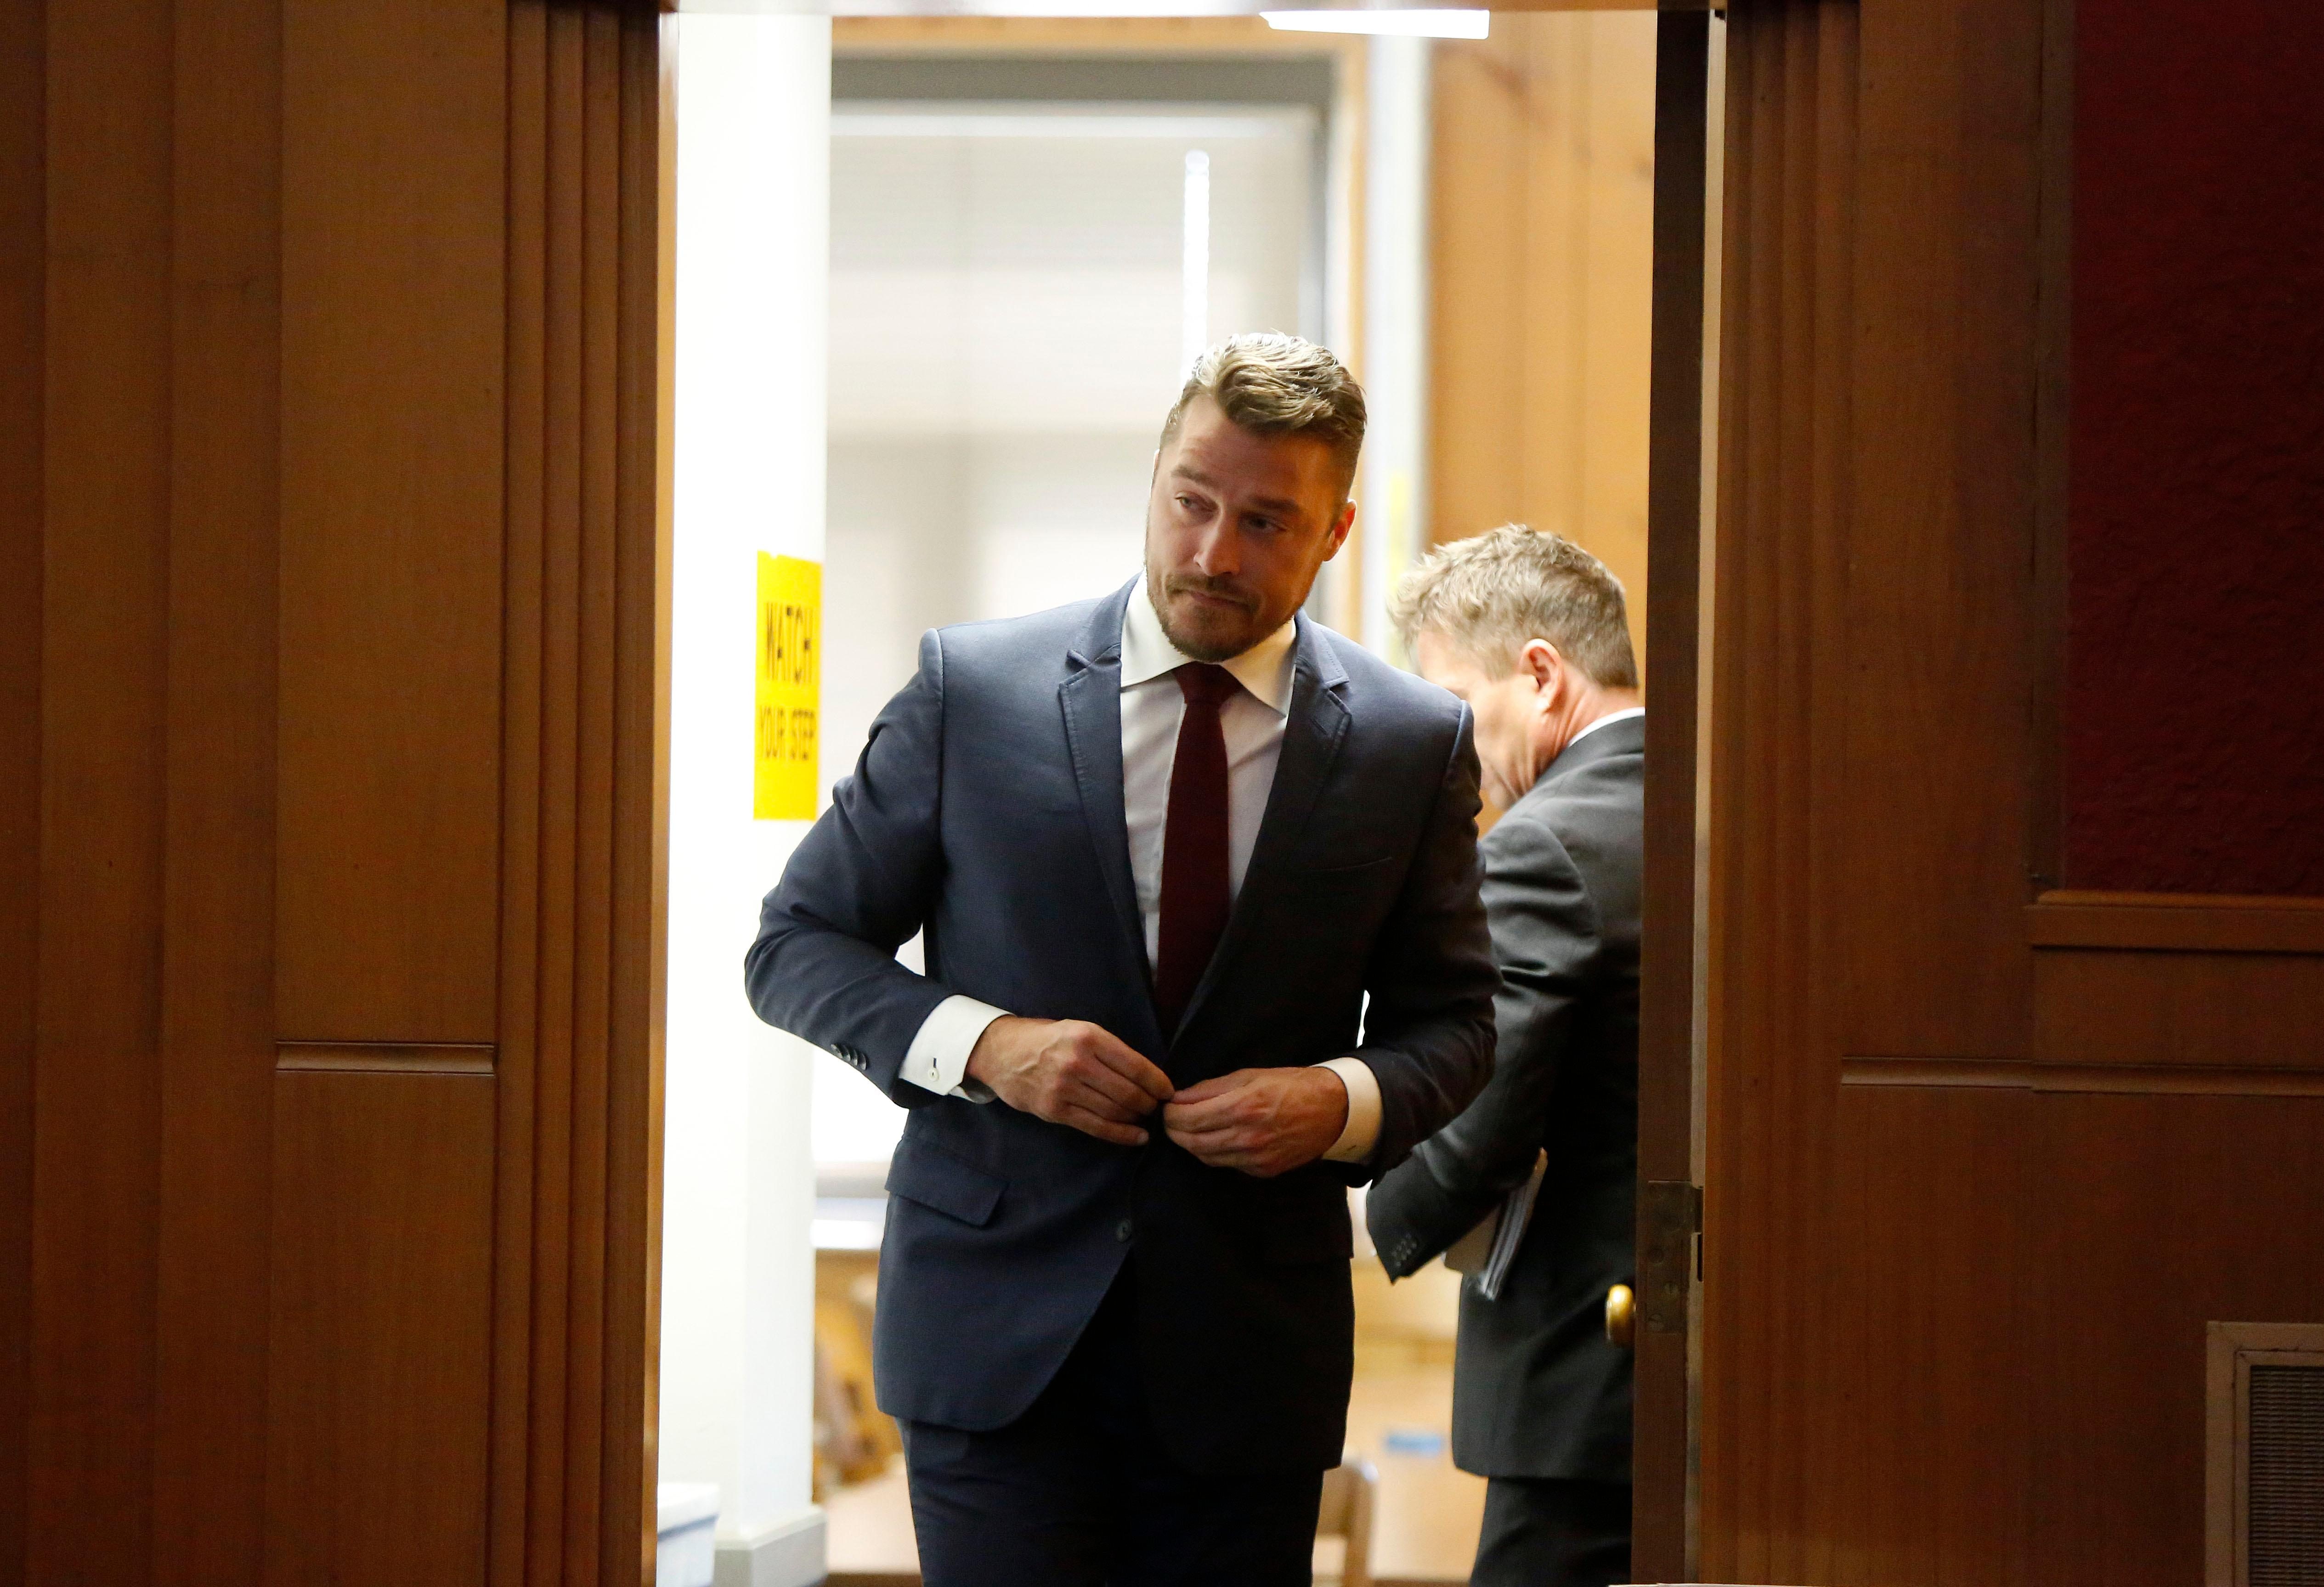 Chris Soules appears for a hearing in Buchanan County District Court Thursday, Sept. 14, 2017, in Independence, Iowa. Reality TV star Soules is charged with leaving the scene in a fatal April crash near Aurora, Iowa. (MATTHEW PUTNEY, The Courier /POOL)